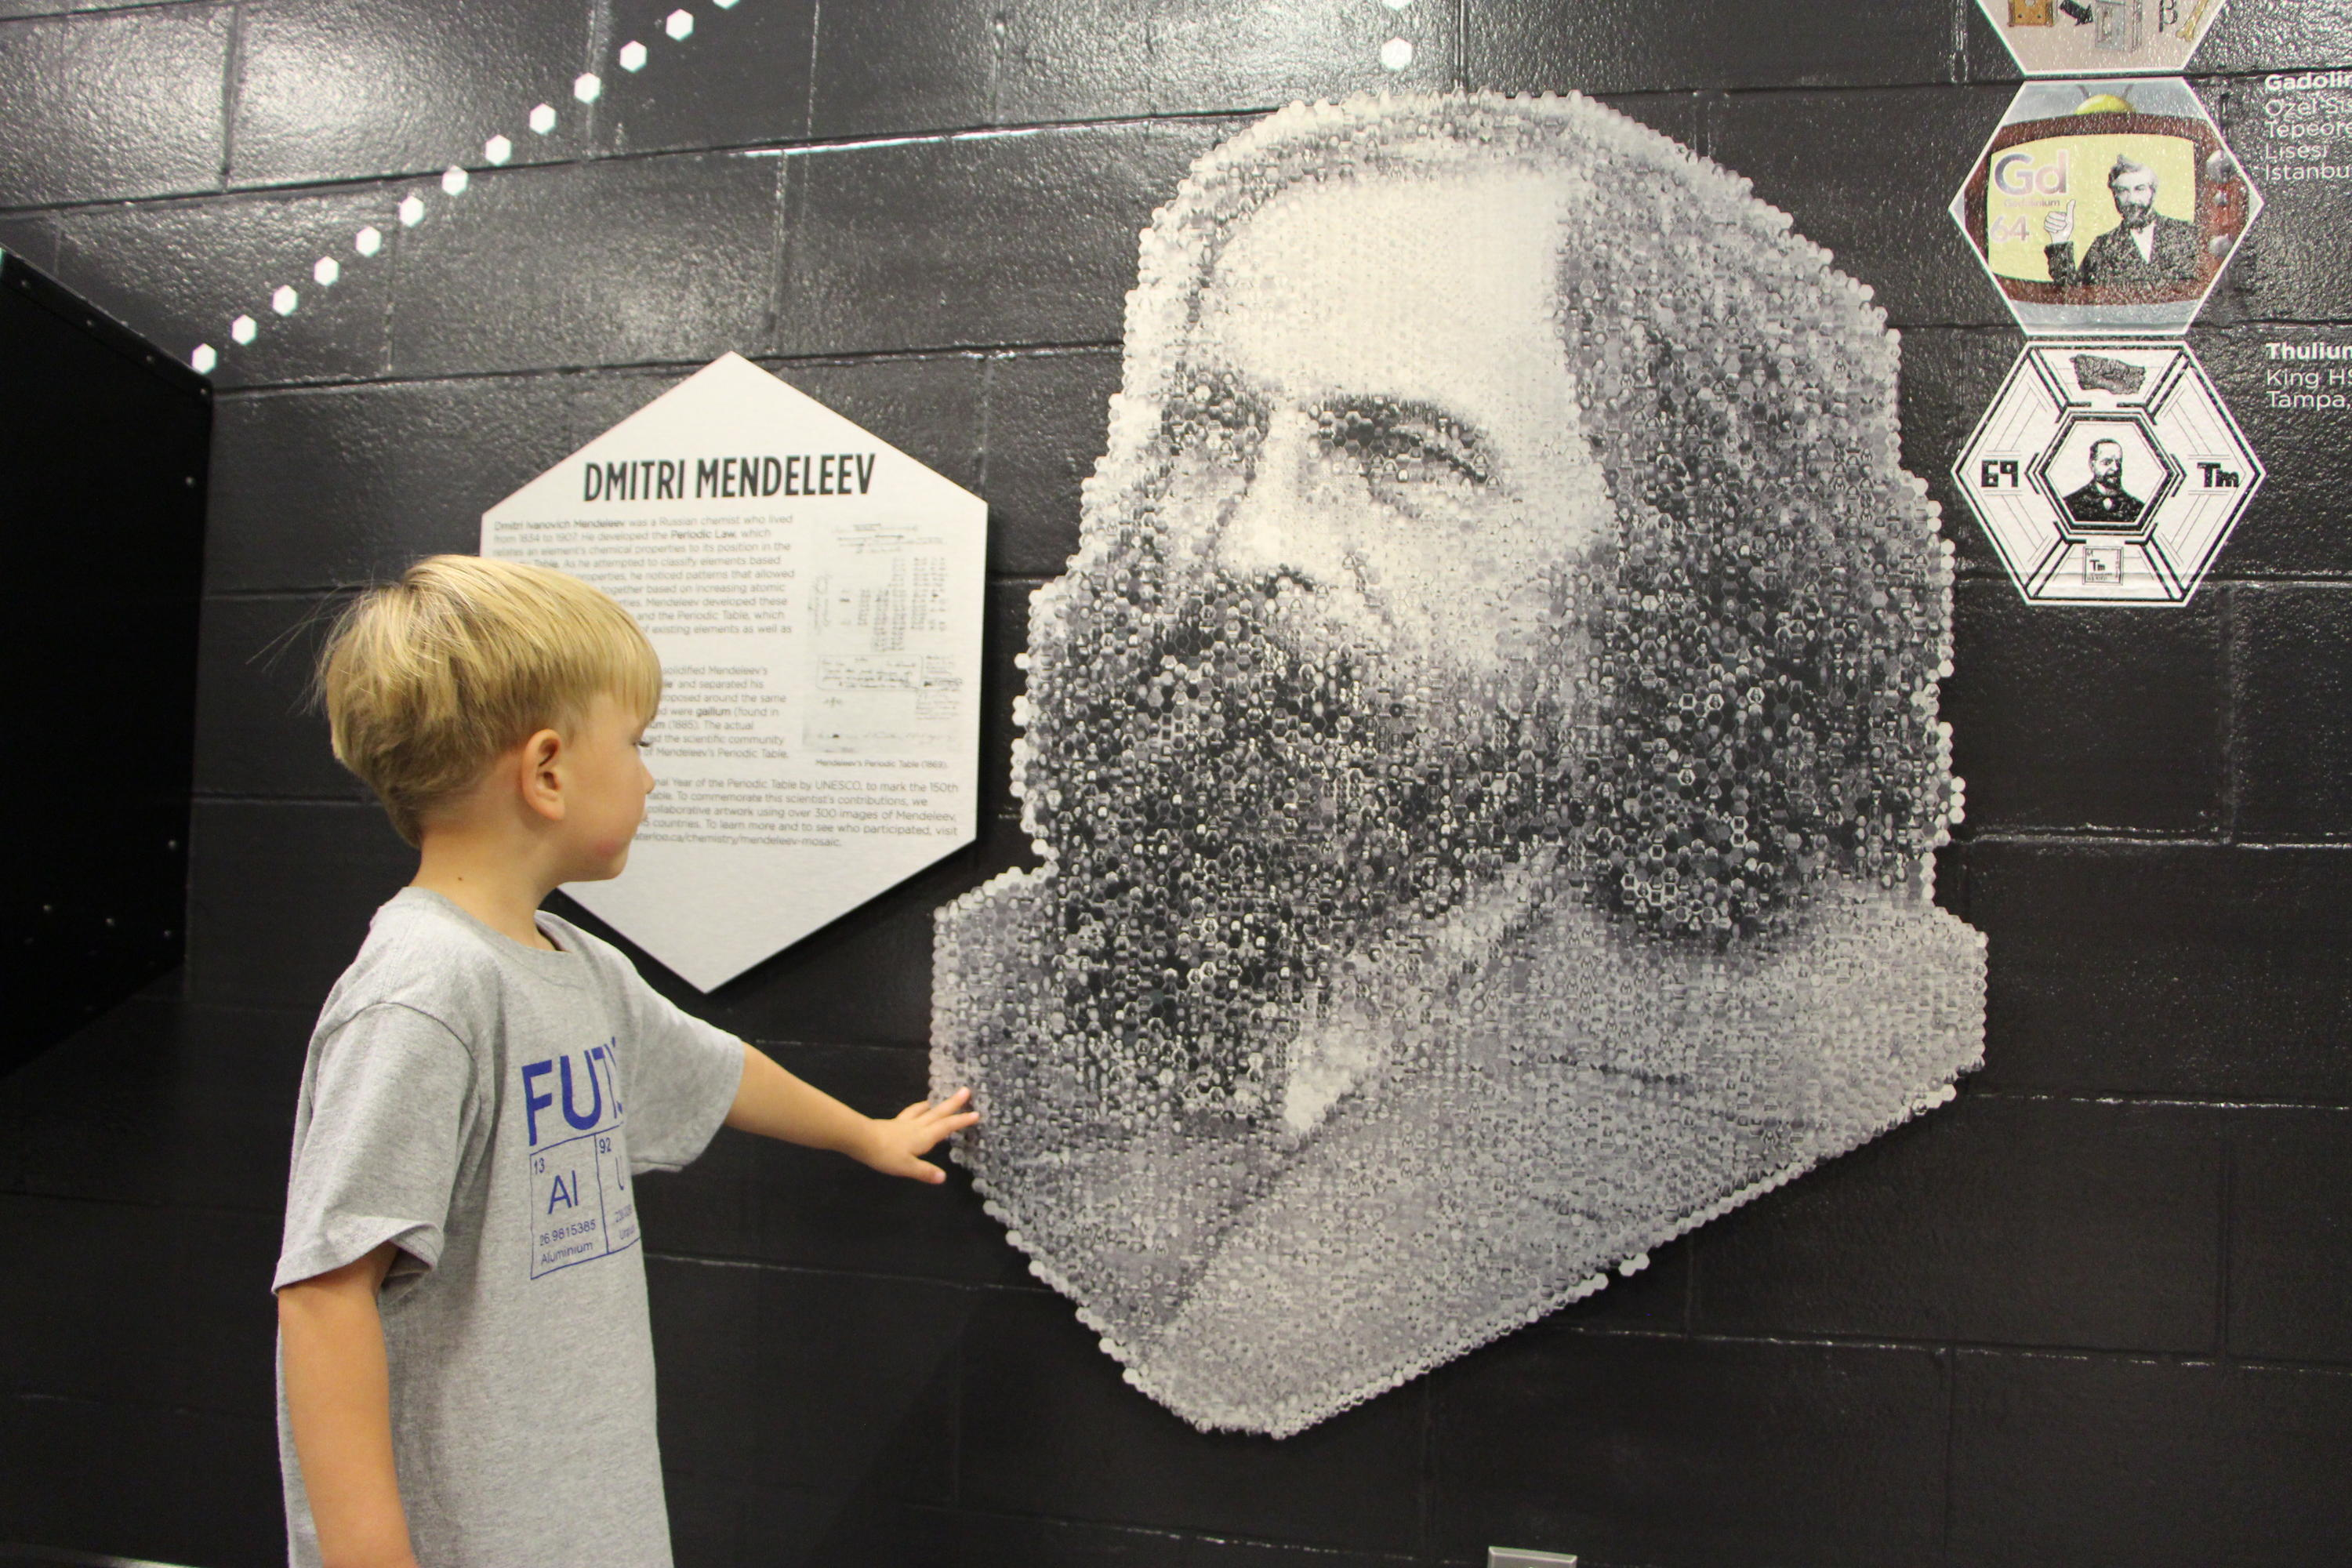 Child standing and looking at a mosaic of Dmitri Mendeleev.